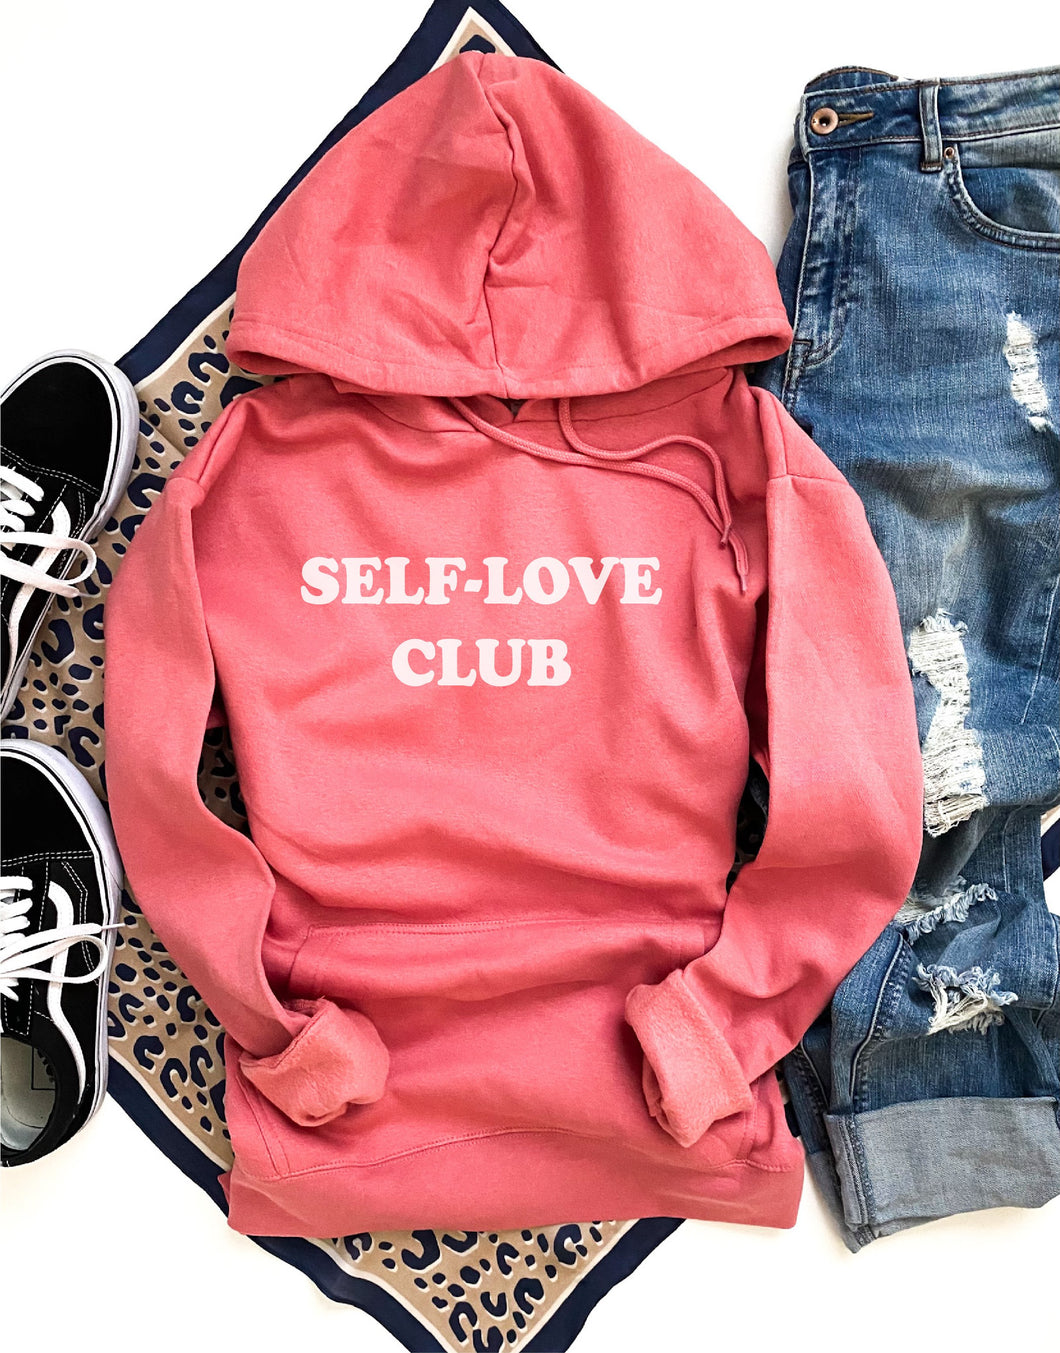 Self-love club fleece hoodie Miscellaneous hoodie Cotton heritage lightweight fleece and independent trading hoodie XS Coral